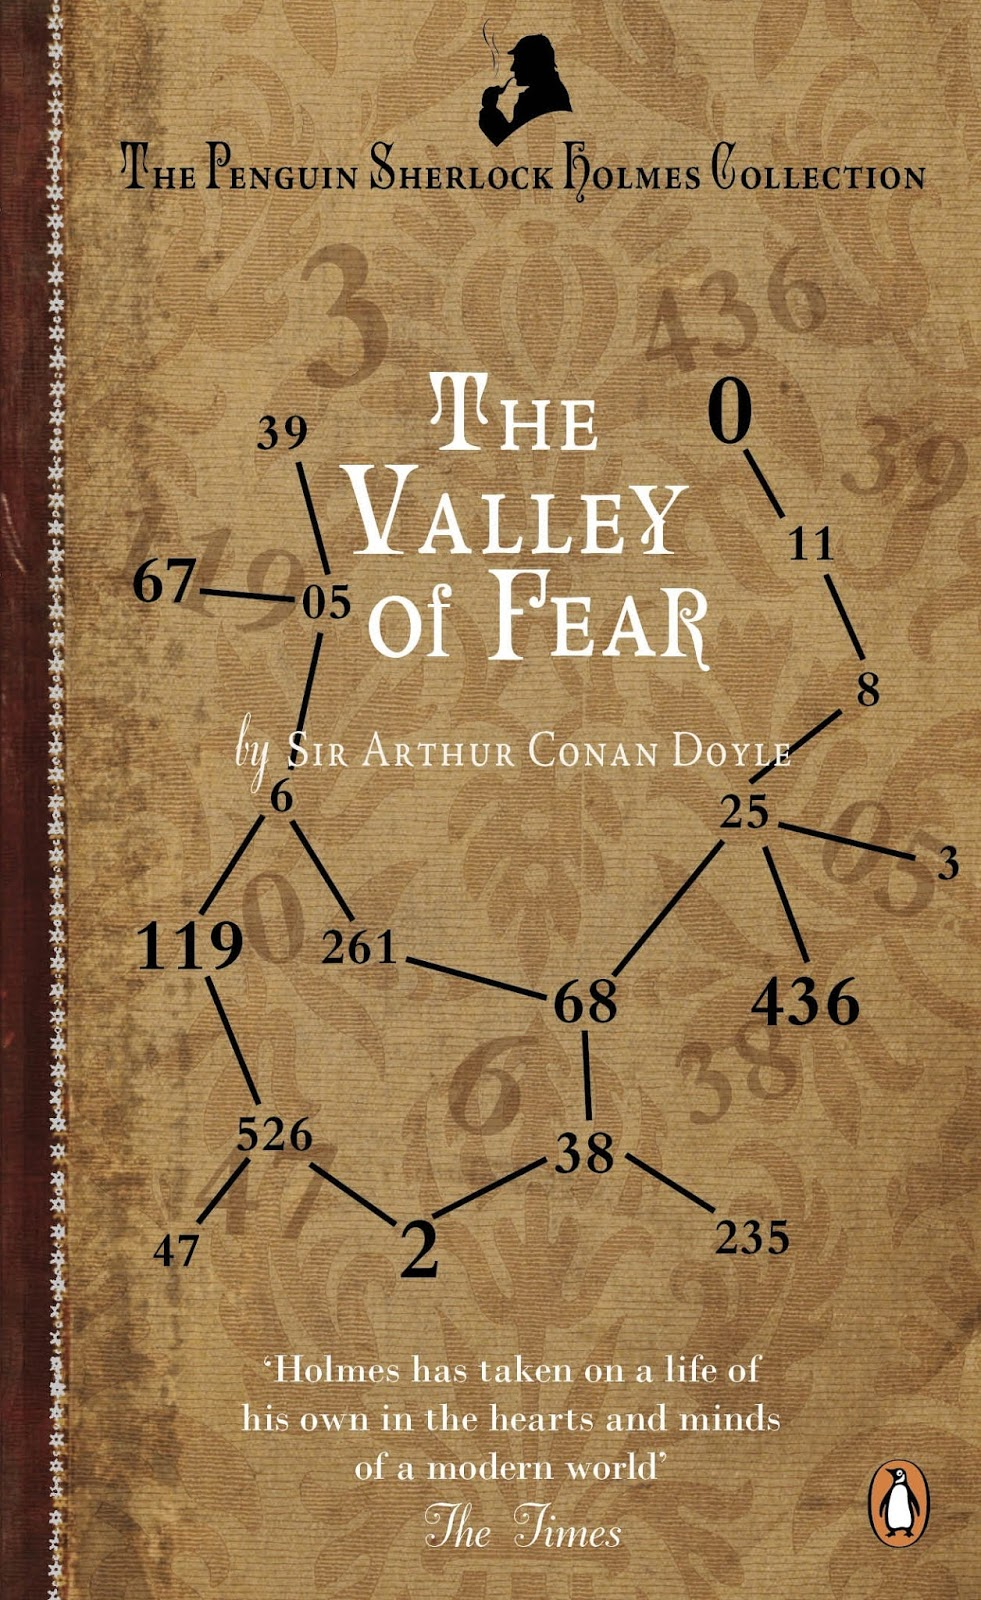 the valley of the fear The complete illustrated novels and thirty-seven short stories of sherlock holmes: a study in scarlet, the sign of the four, hound of the baskervilles, valley of fear, the adventures, memoirs & return.